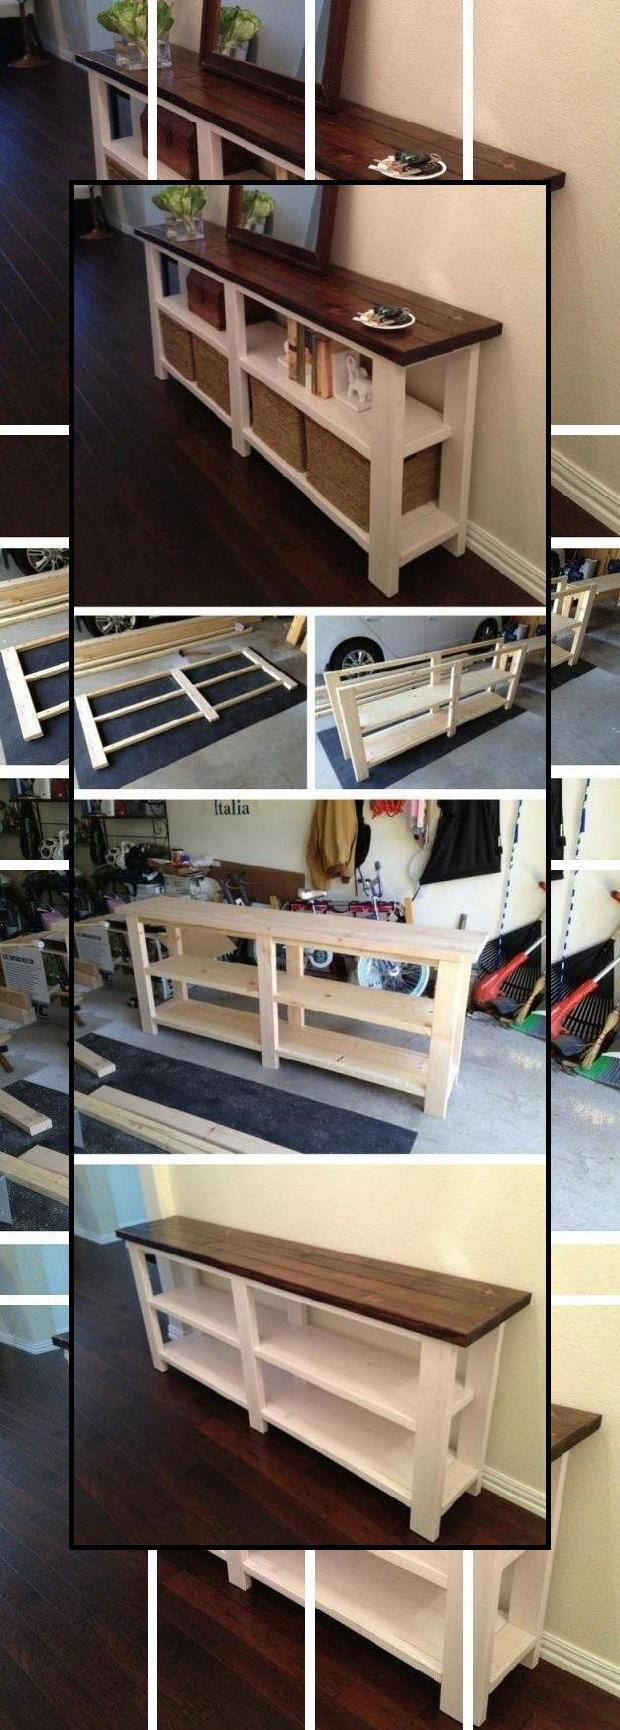 Wood Furniture Patterns | Do It Yourself Table Legs | Diy Tv Furniture